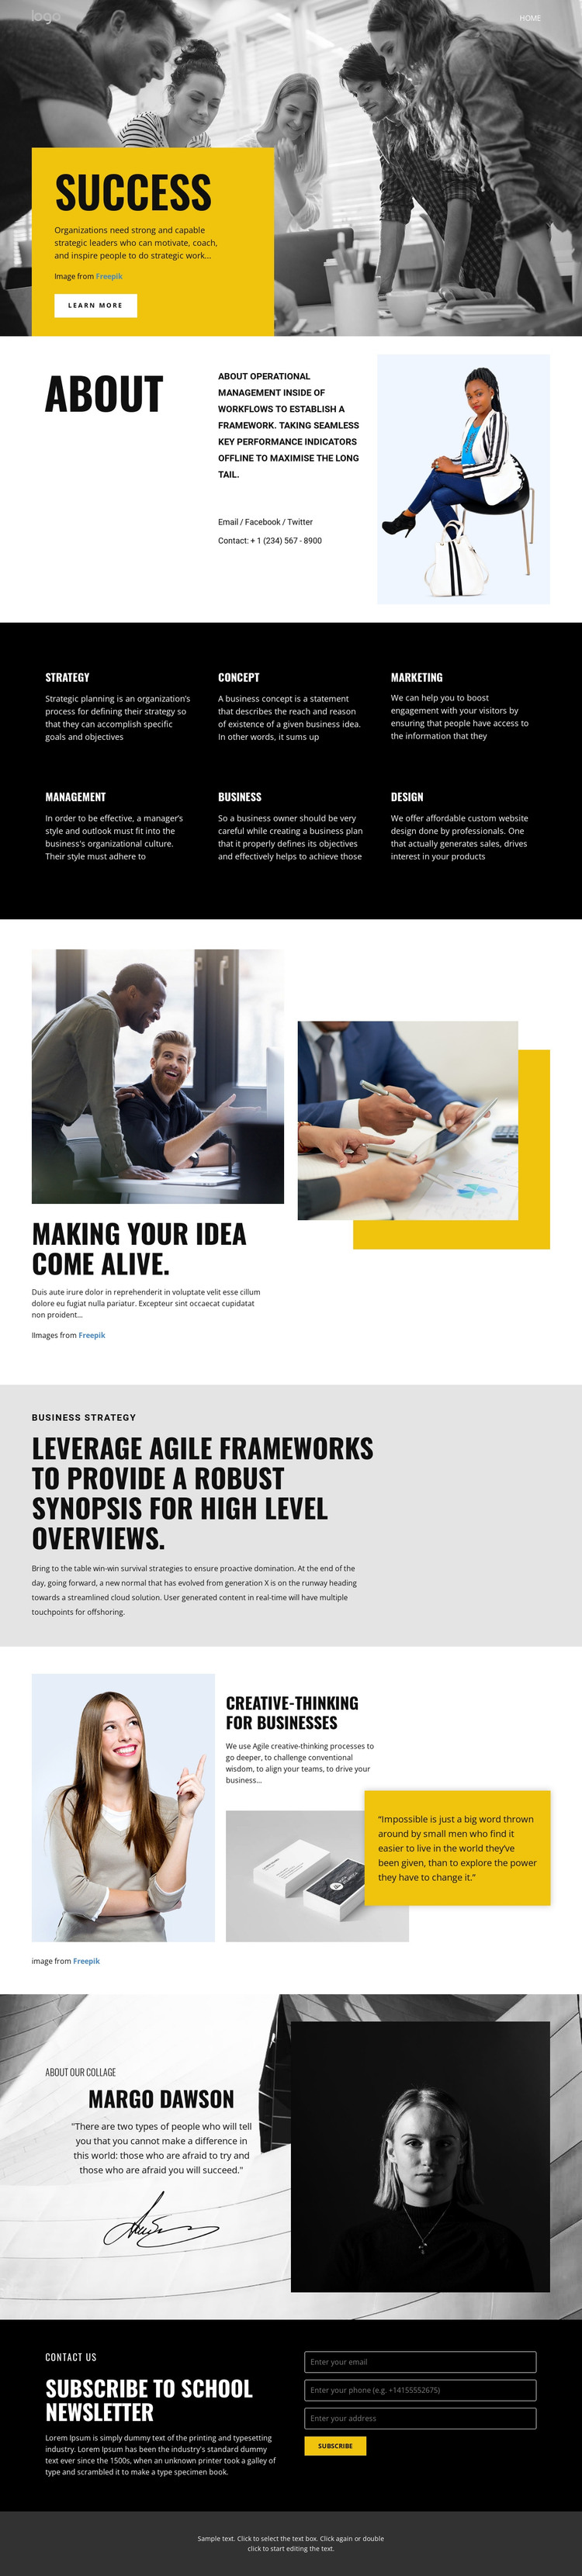 Capable people in businesses HTML Template